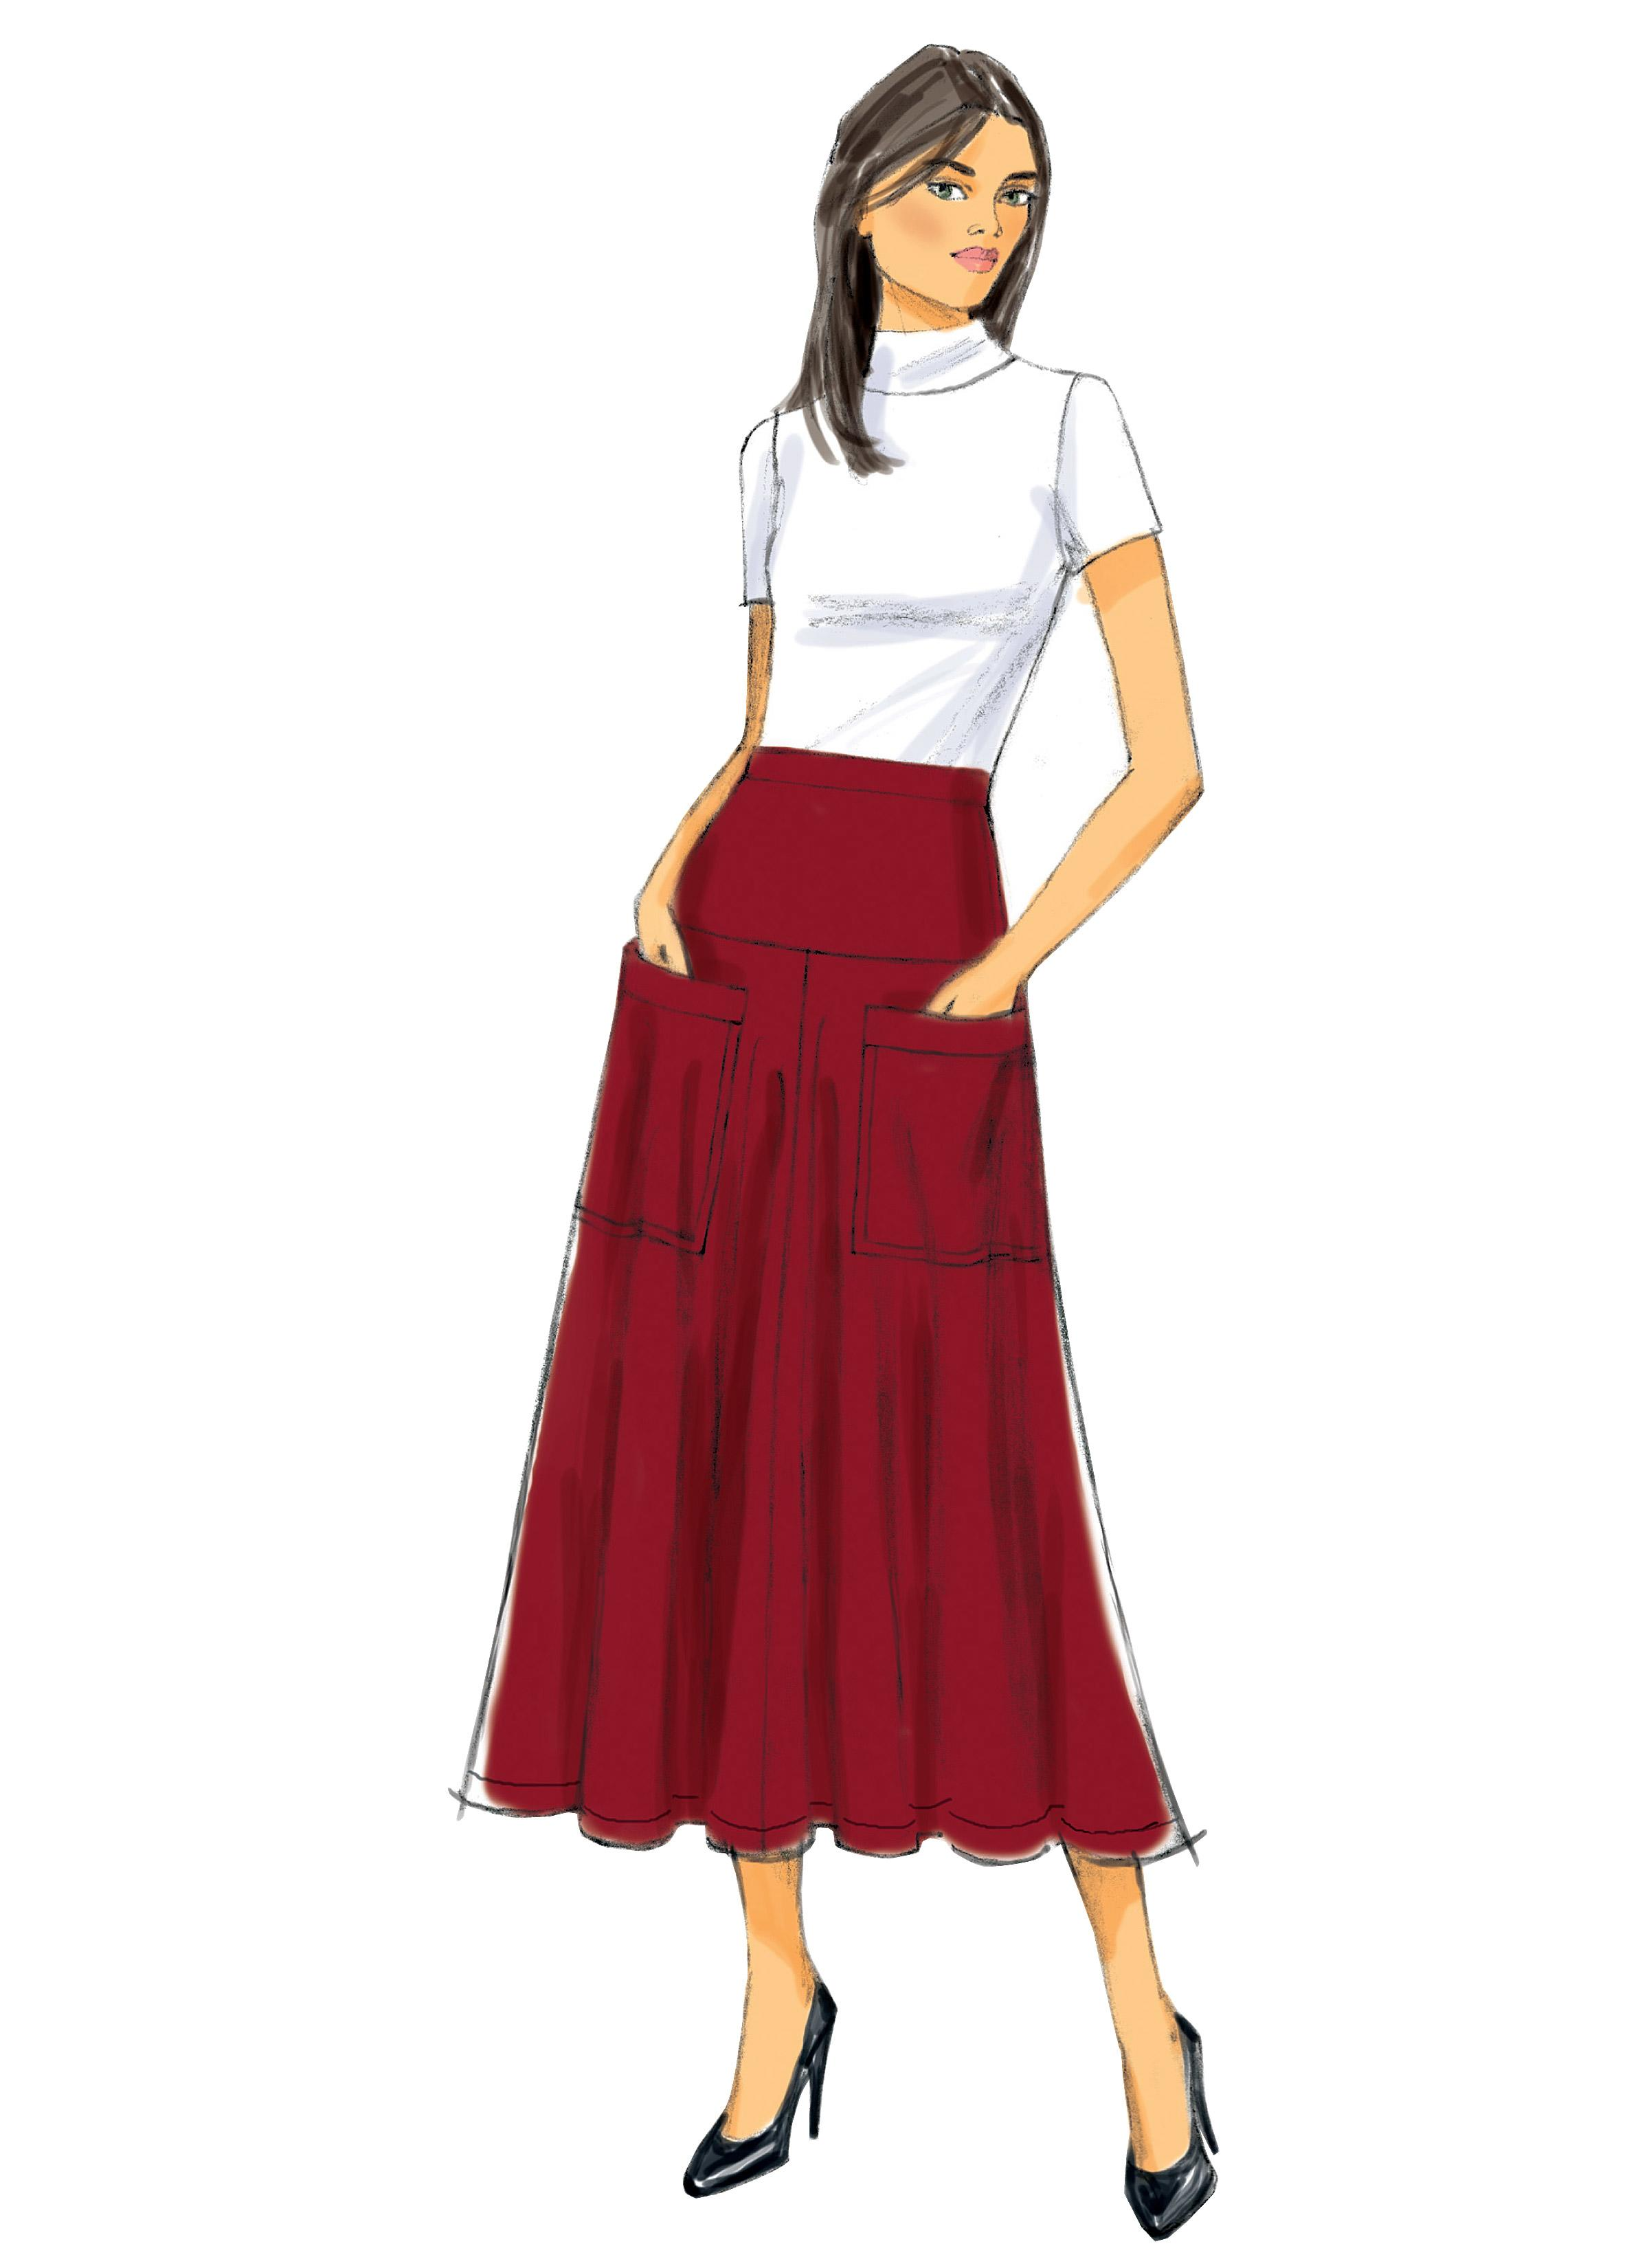 Butterick B6249 Misses' Skirt